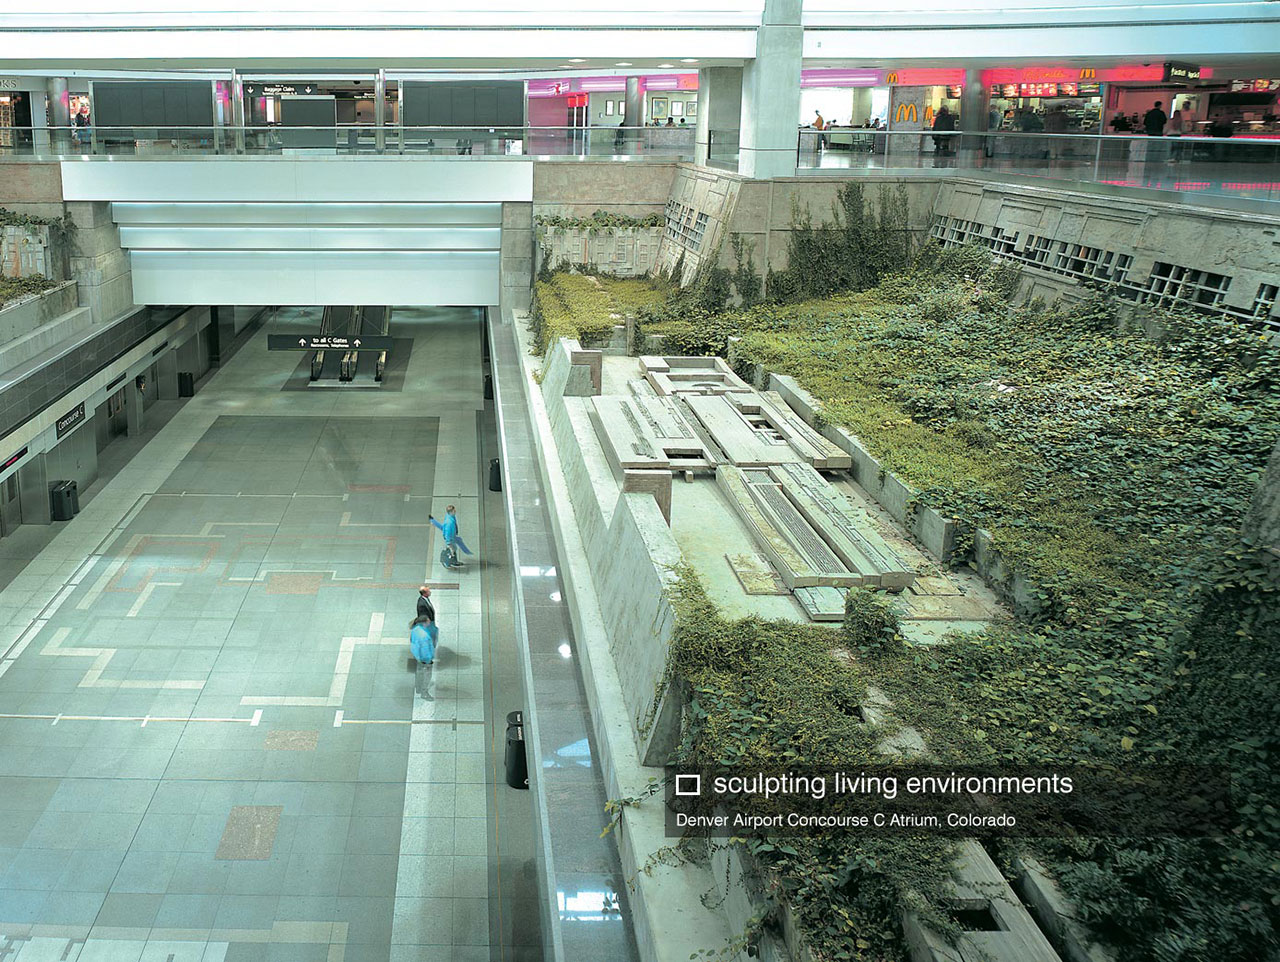 Michael_Singer_Denver_Airport_Interior_Garden_P2_Intro